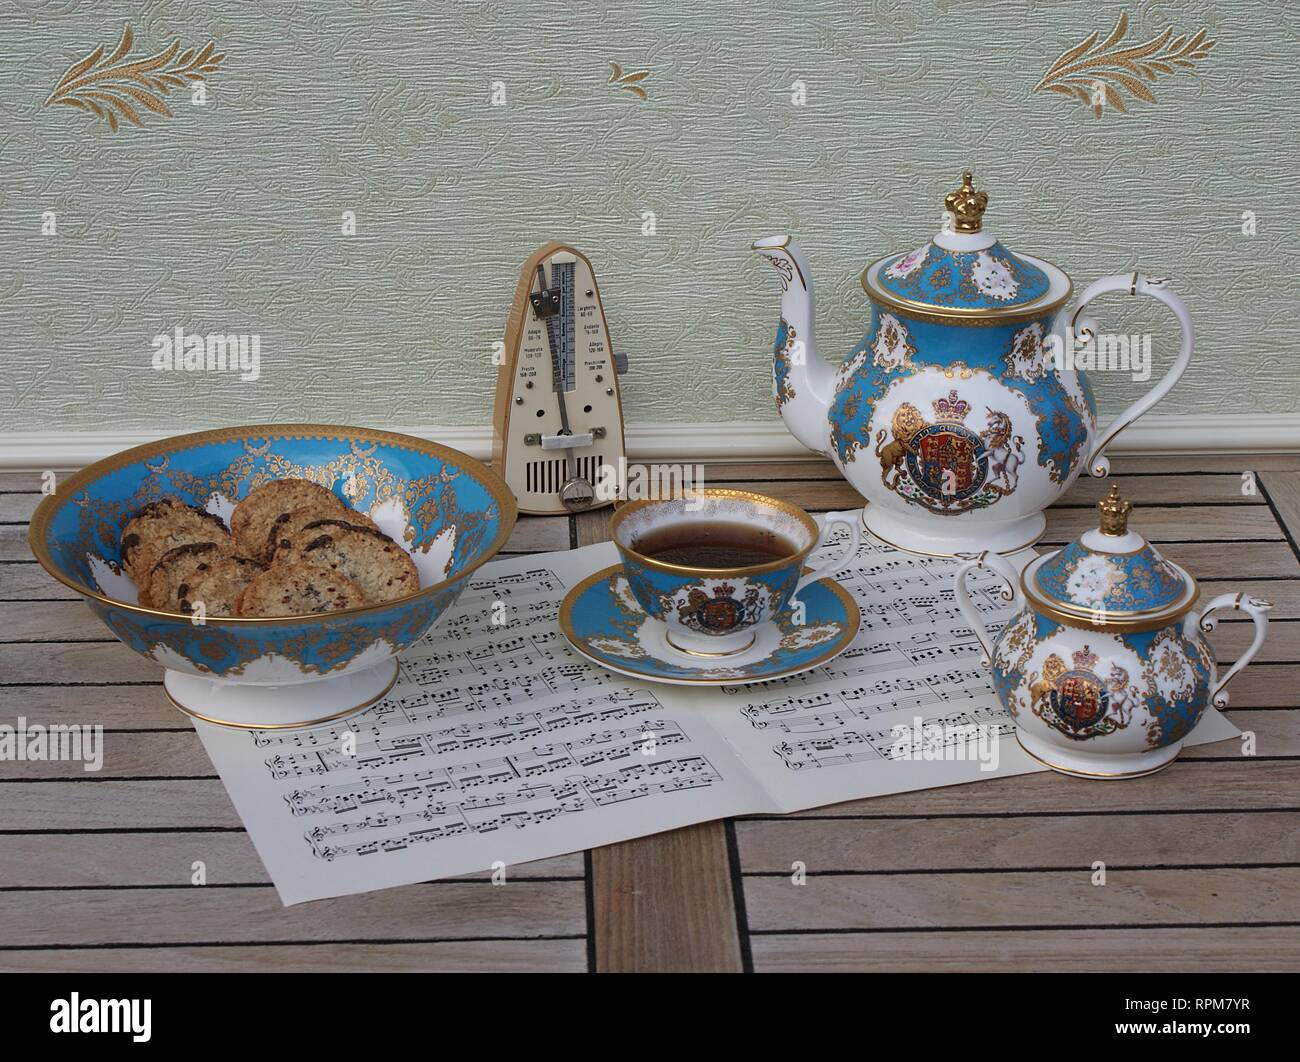 English teacup with saucer, teapot, sugar bowl and a cake bowl with cookies, fine bone china porcelain, and a metronome for music on a sheet of music - Stock Image